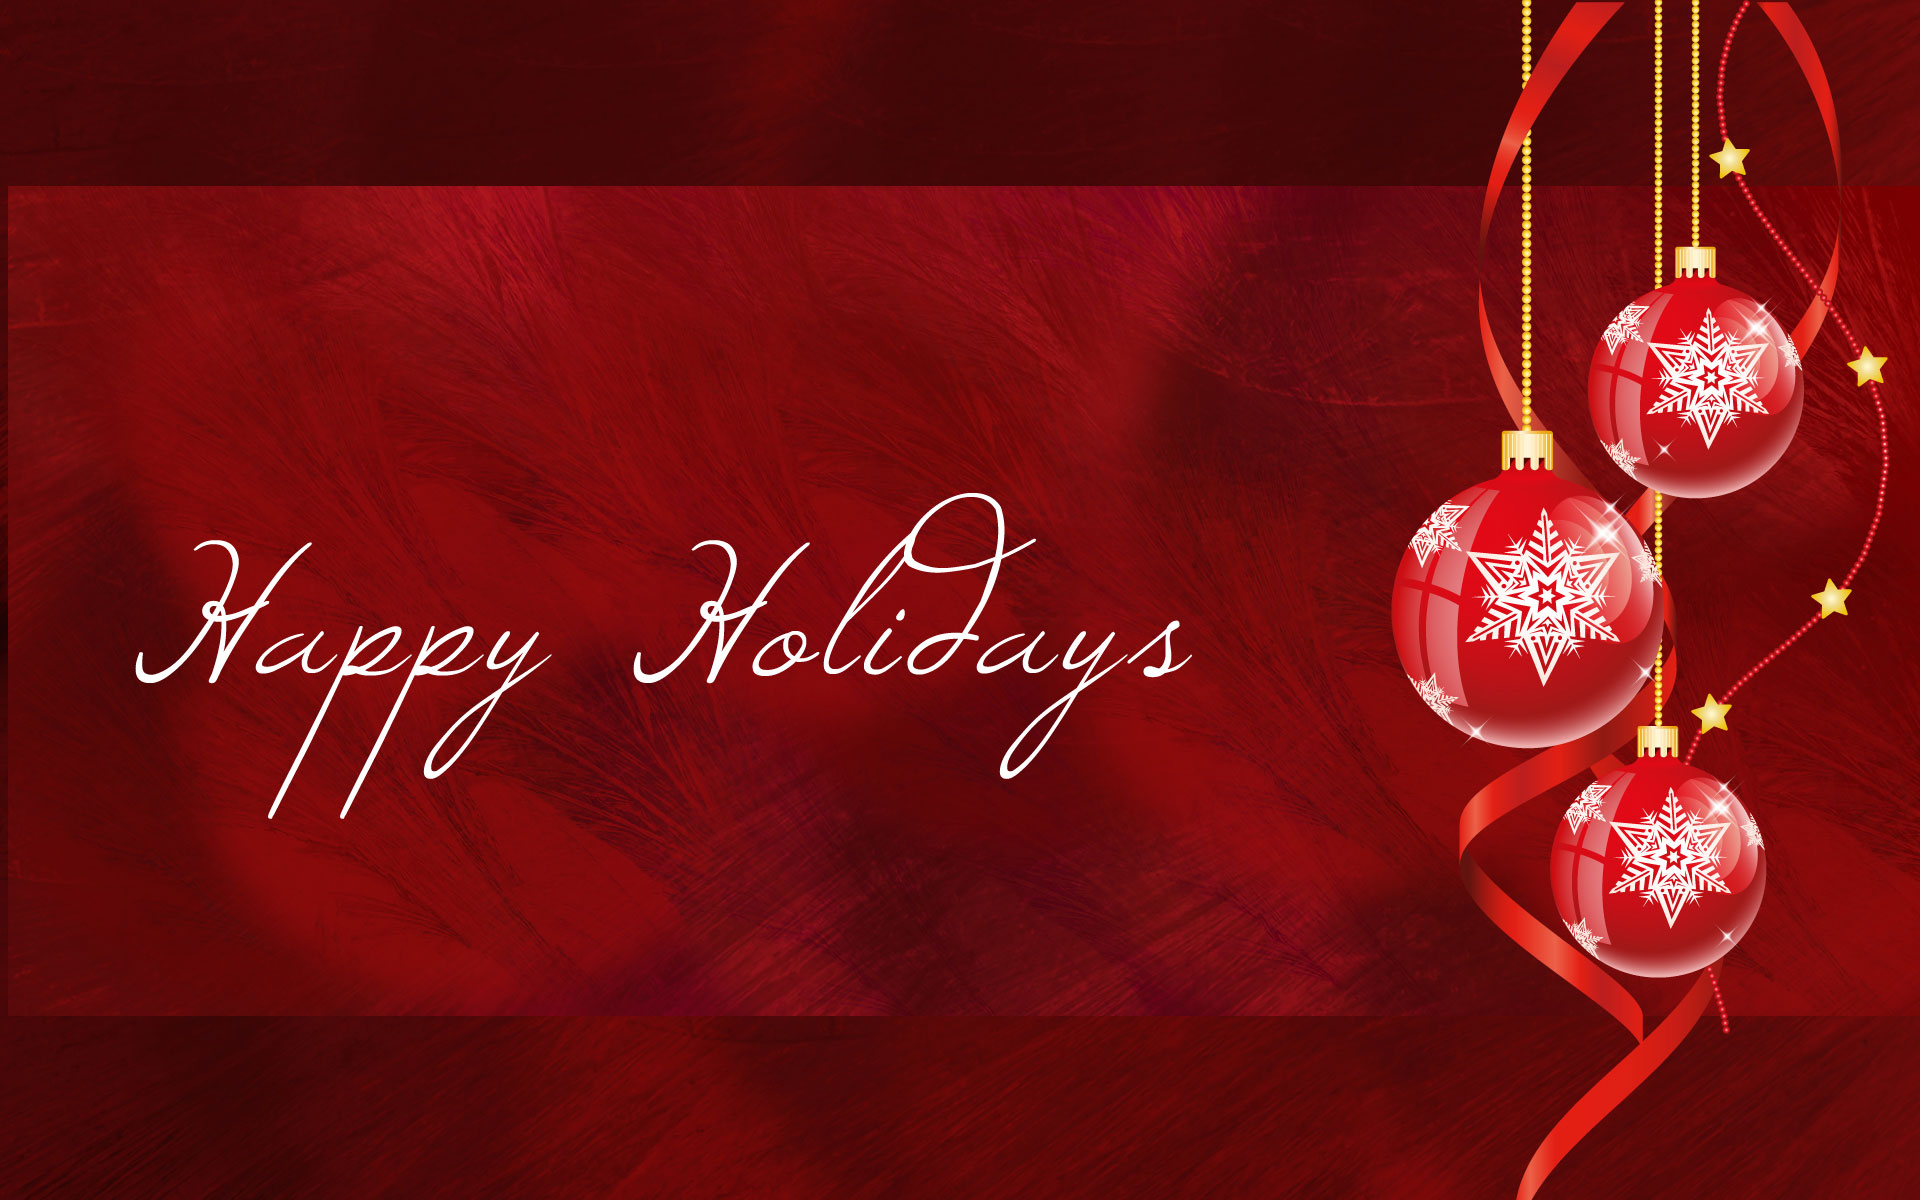 happy holidays wallpapers - Christmas Holiday 2015